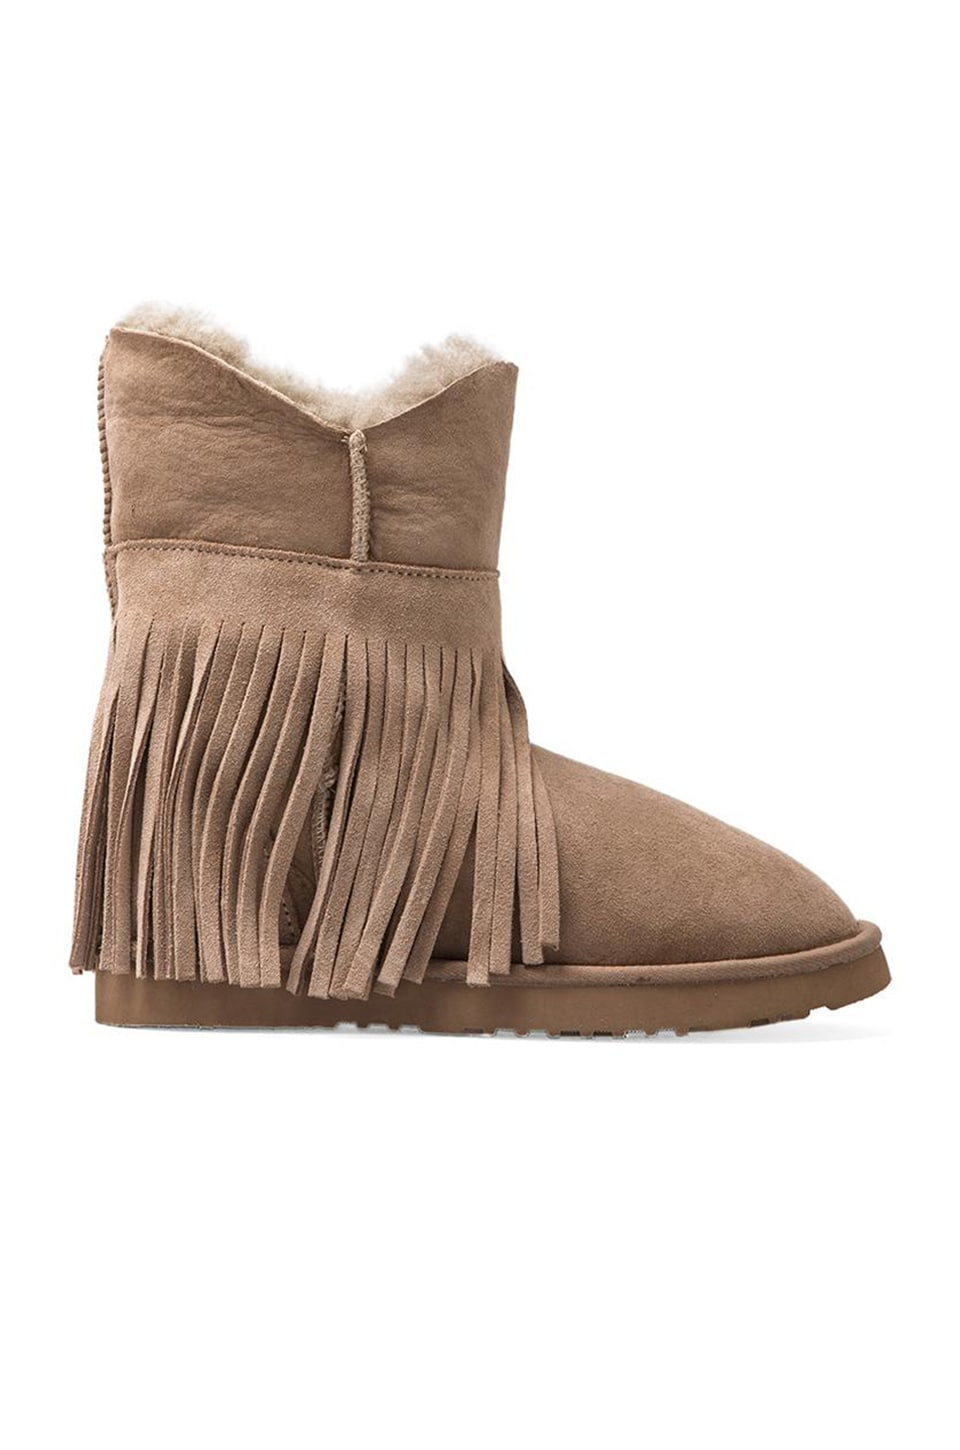 Koolaburra Haley Ankle II with Twinface Sheepskin in Seta